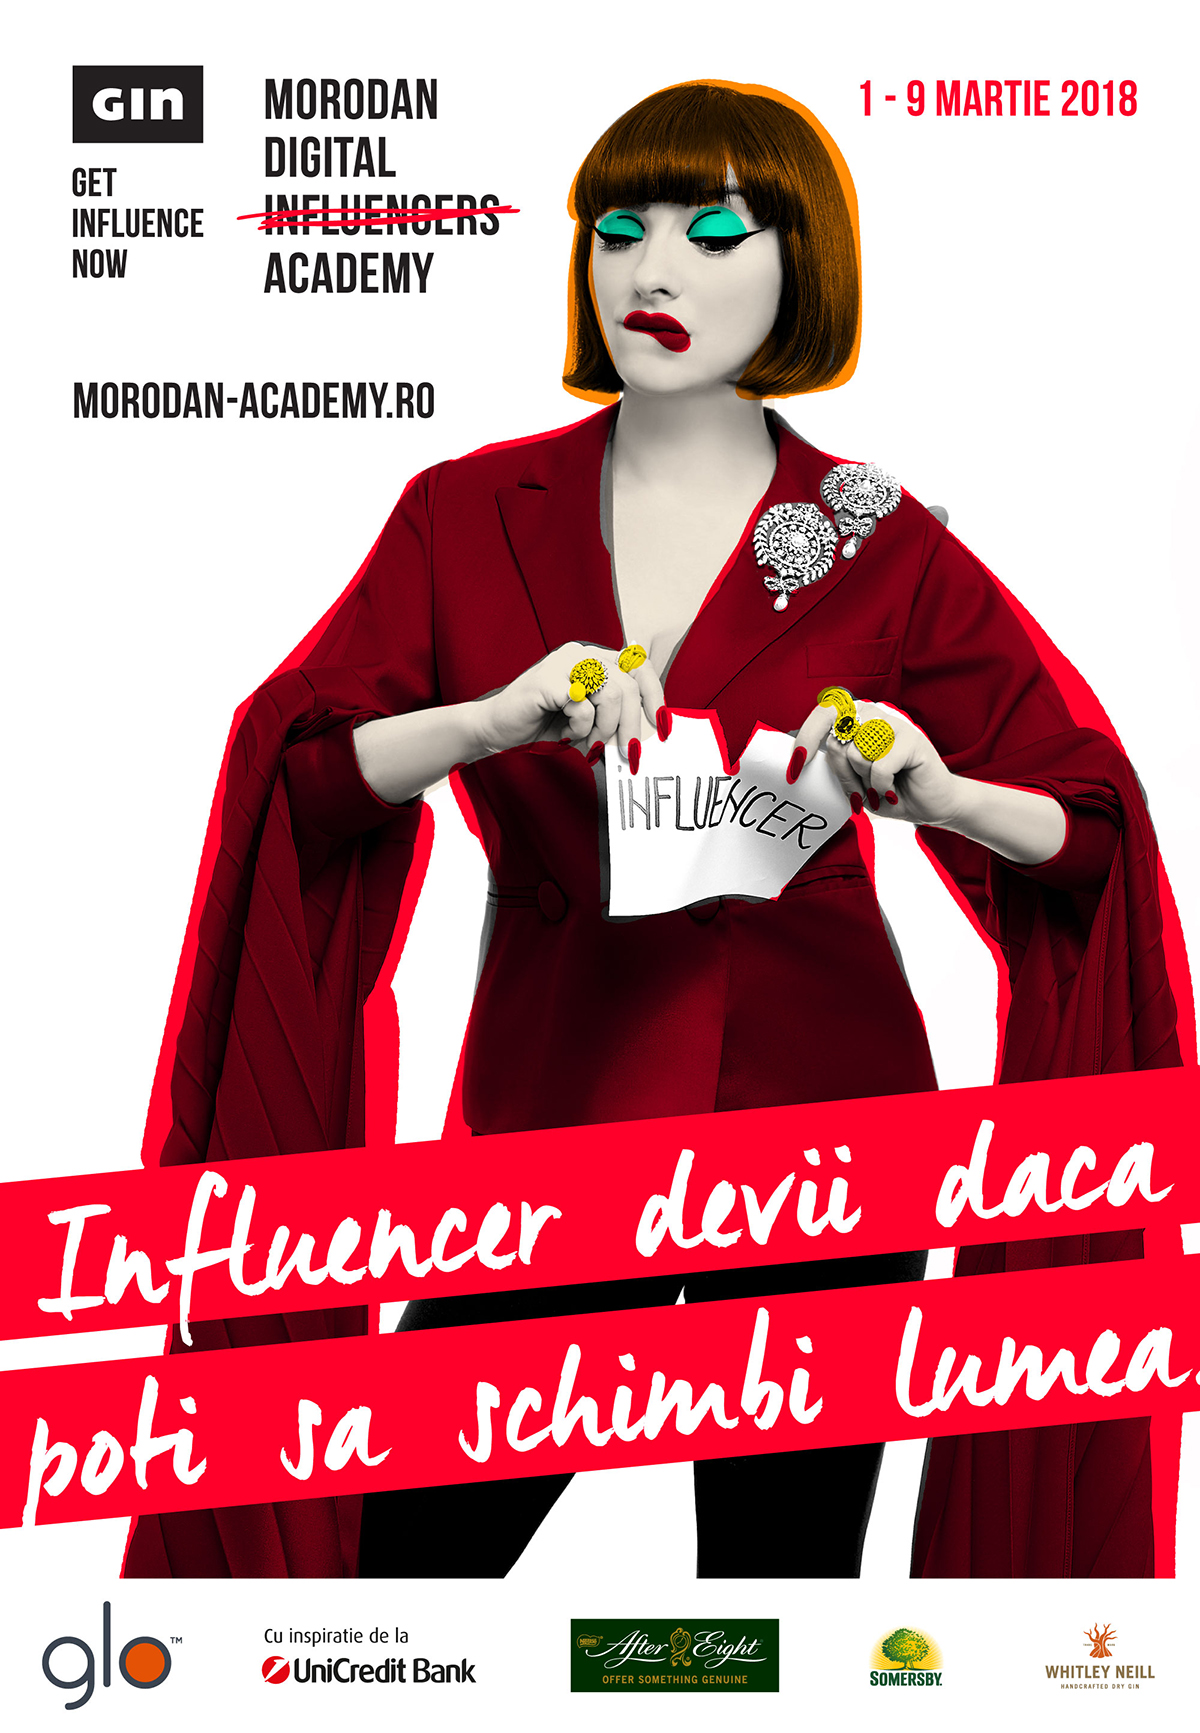 MORODAN-DIGITAL-INFLUENCERS-ACADEMY-2018-1